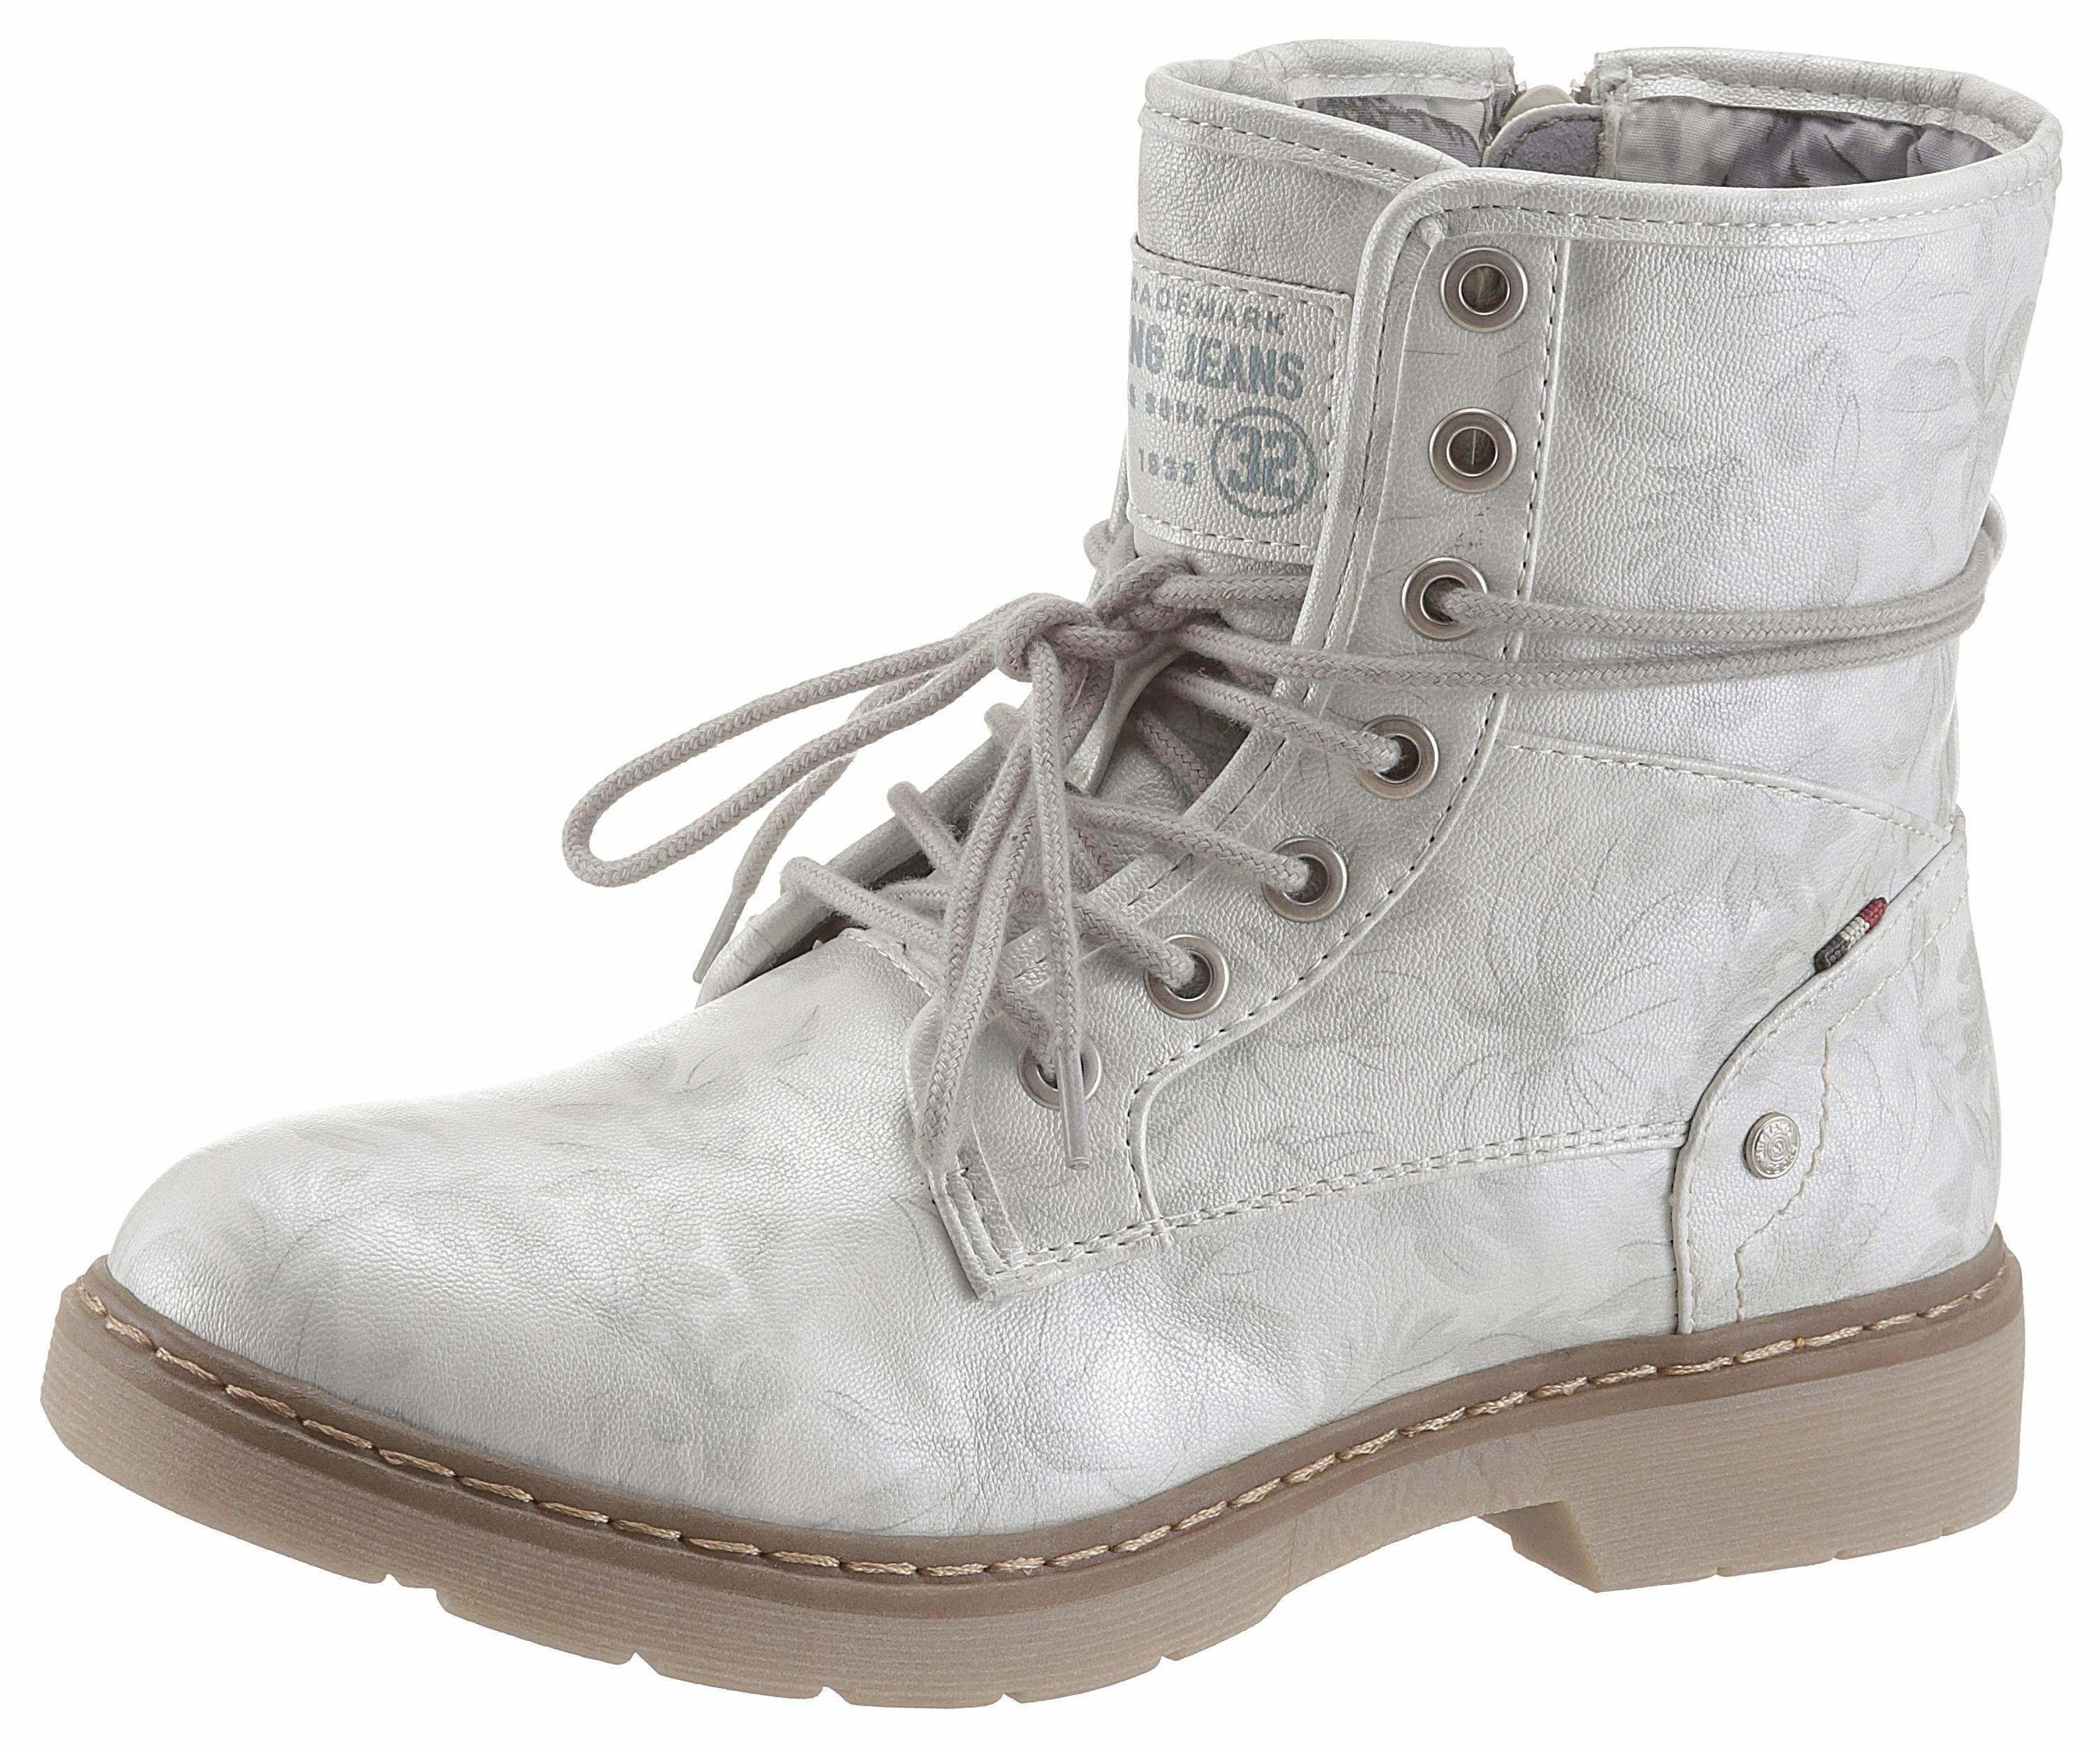 Chaussures Botte Blanche Mustang Mustang dJNFt9